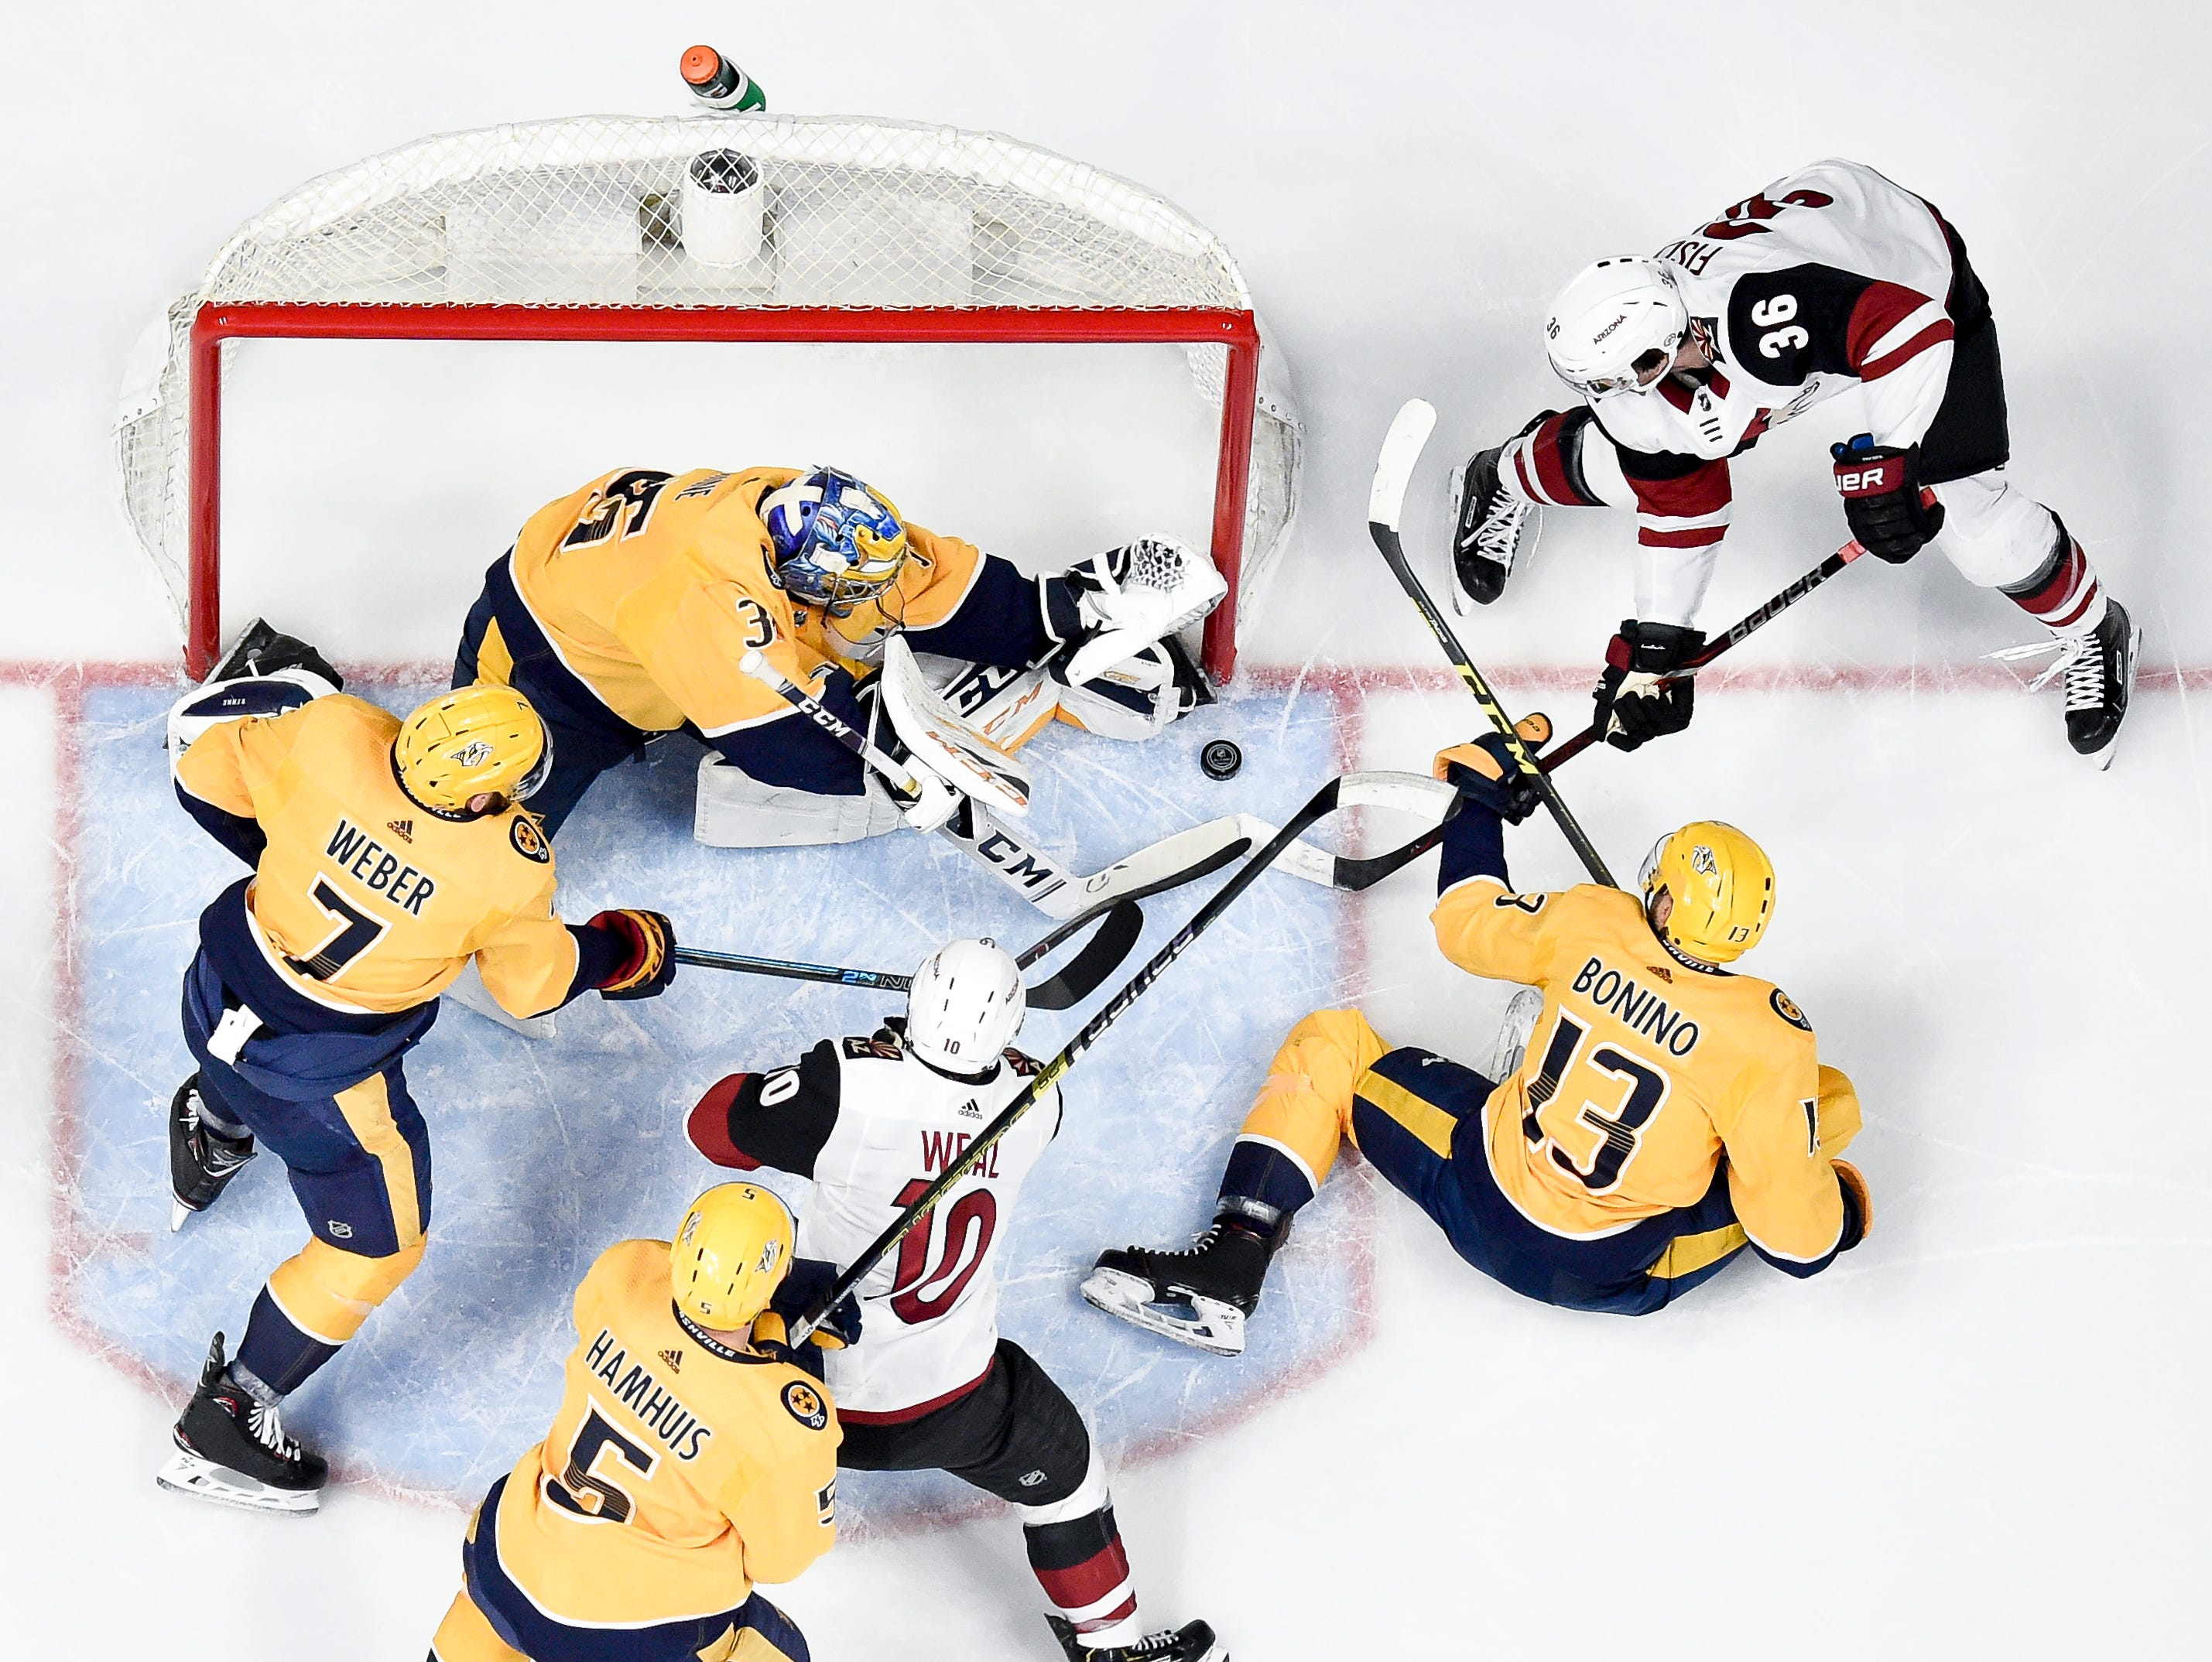 Nashville Predators goaltender Pekka Rinne (35) stops a shot from Arizona Coyotes right wing Christian Fischer (36) during the first period at Bridgestone Arena in Nashville, Tenn., Tuesday, Feb. 5, 2019.